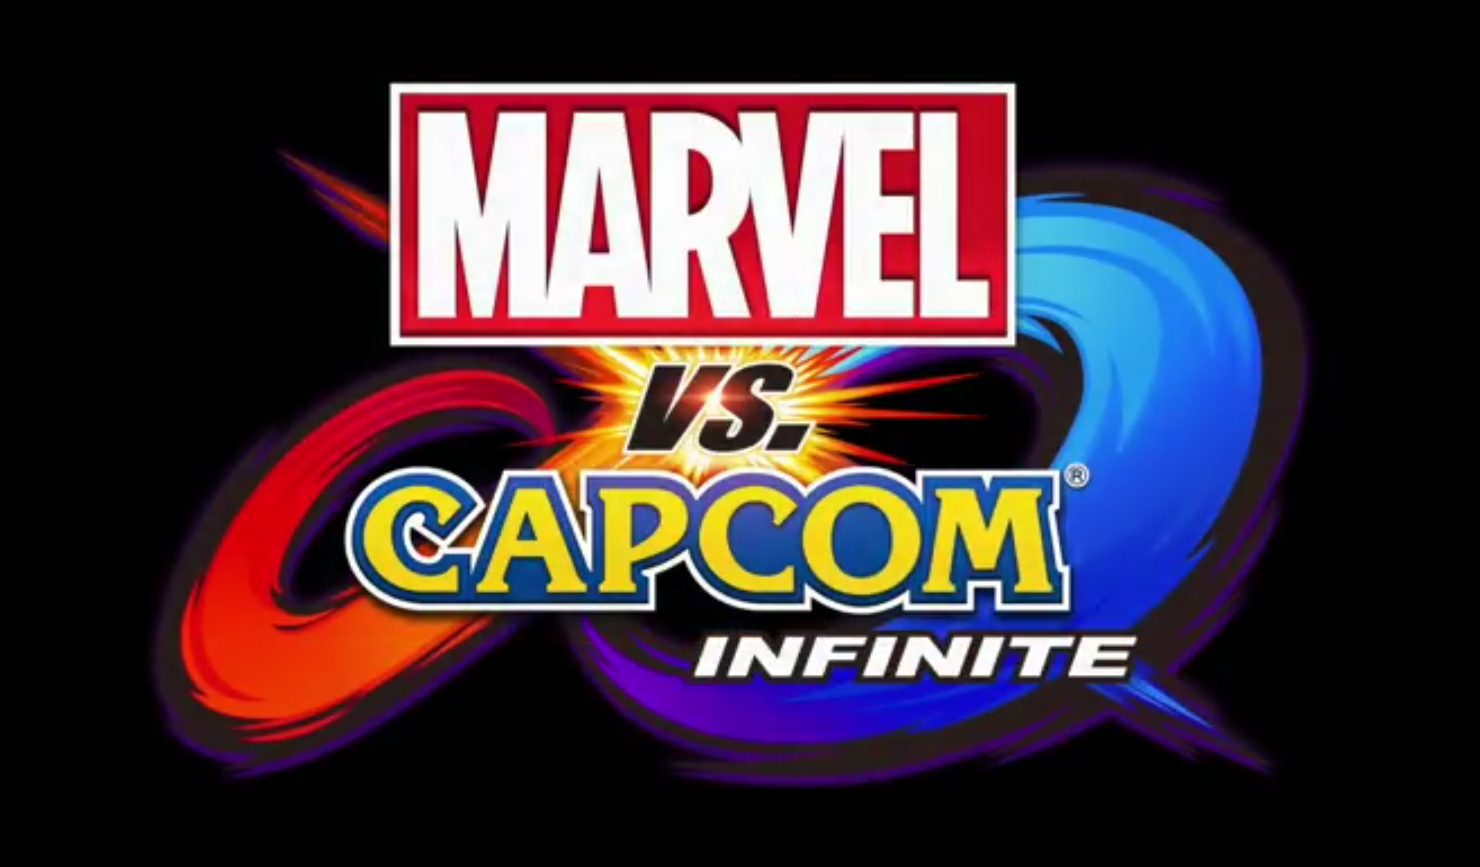 Marvel vs Capcom Infinite si mostra in un primo trailer di gameplay